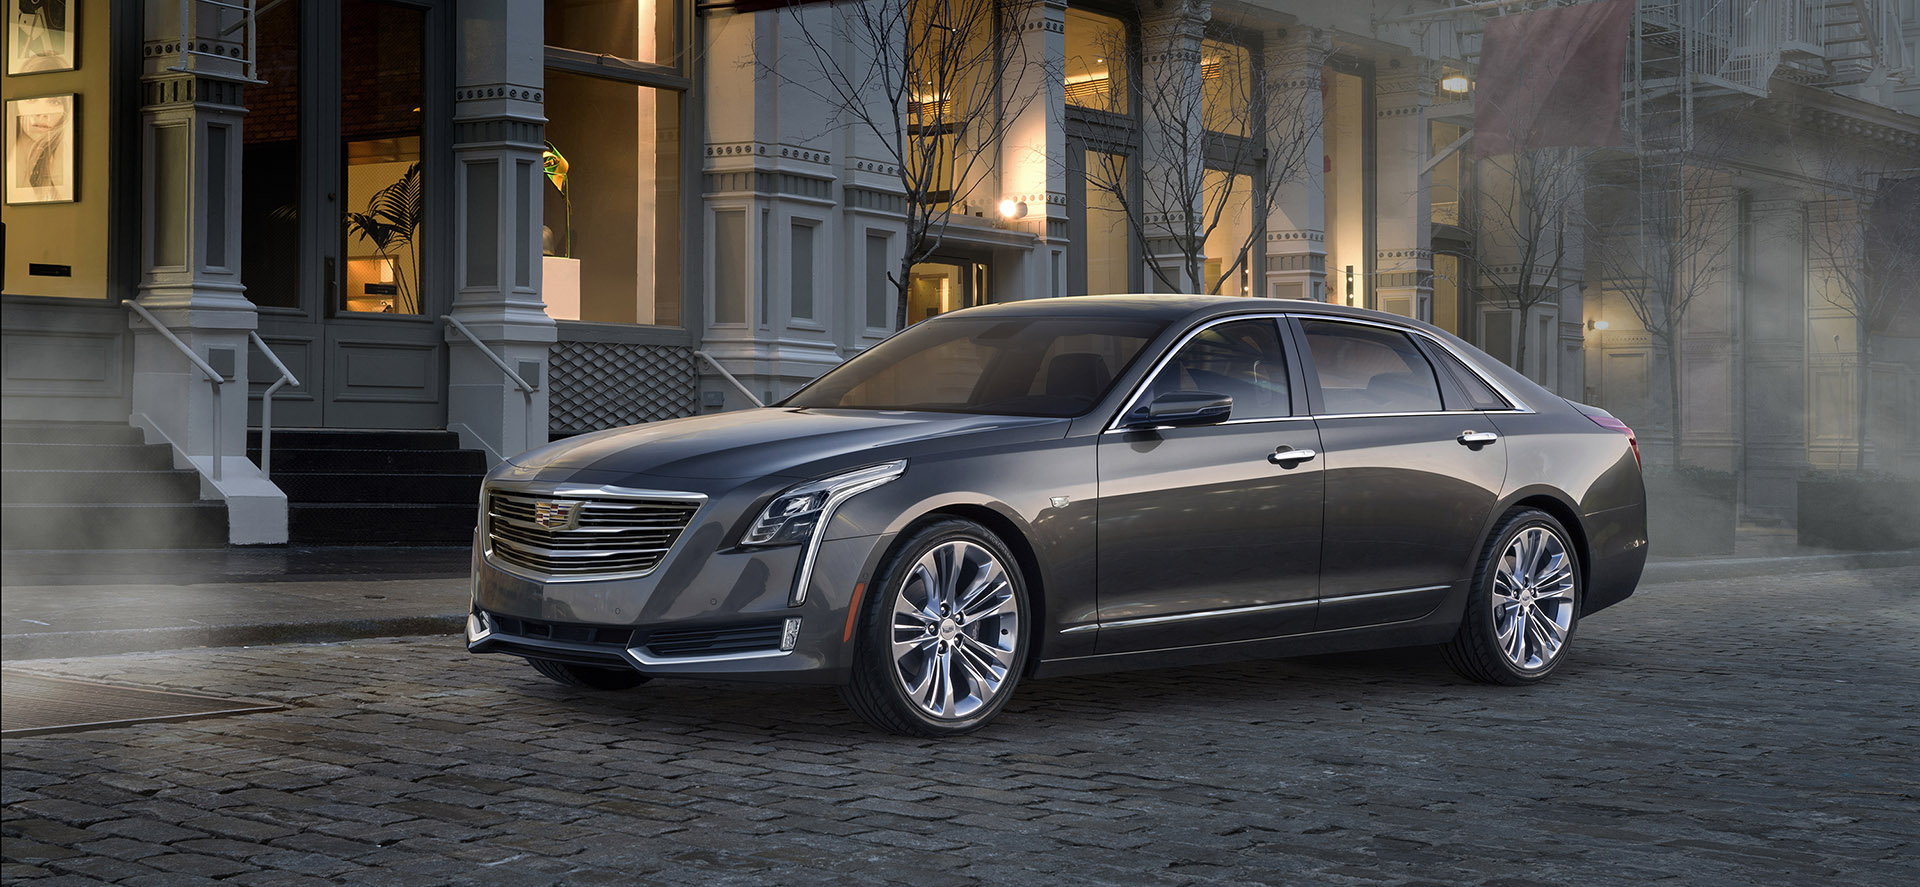 Cadillac Ct6 A Brand New Compeor In The Luxury Car Segment Vr World